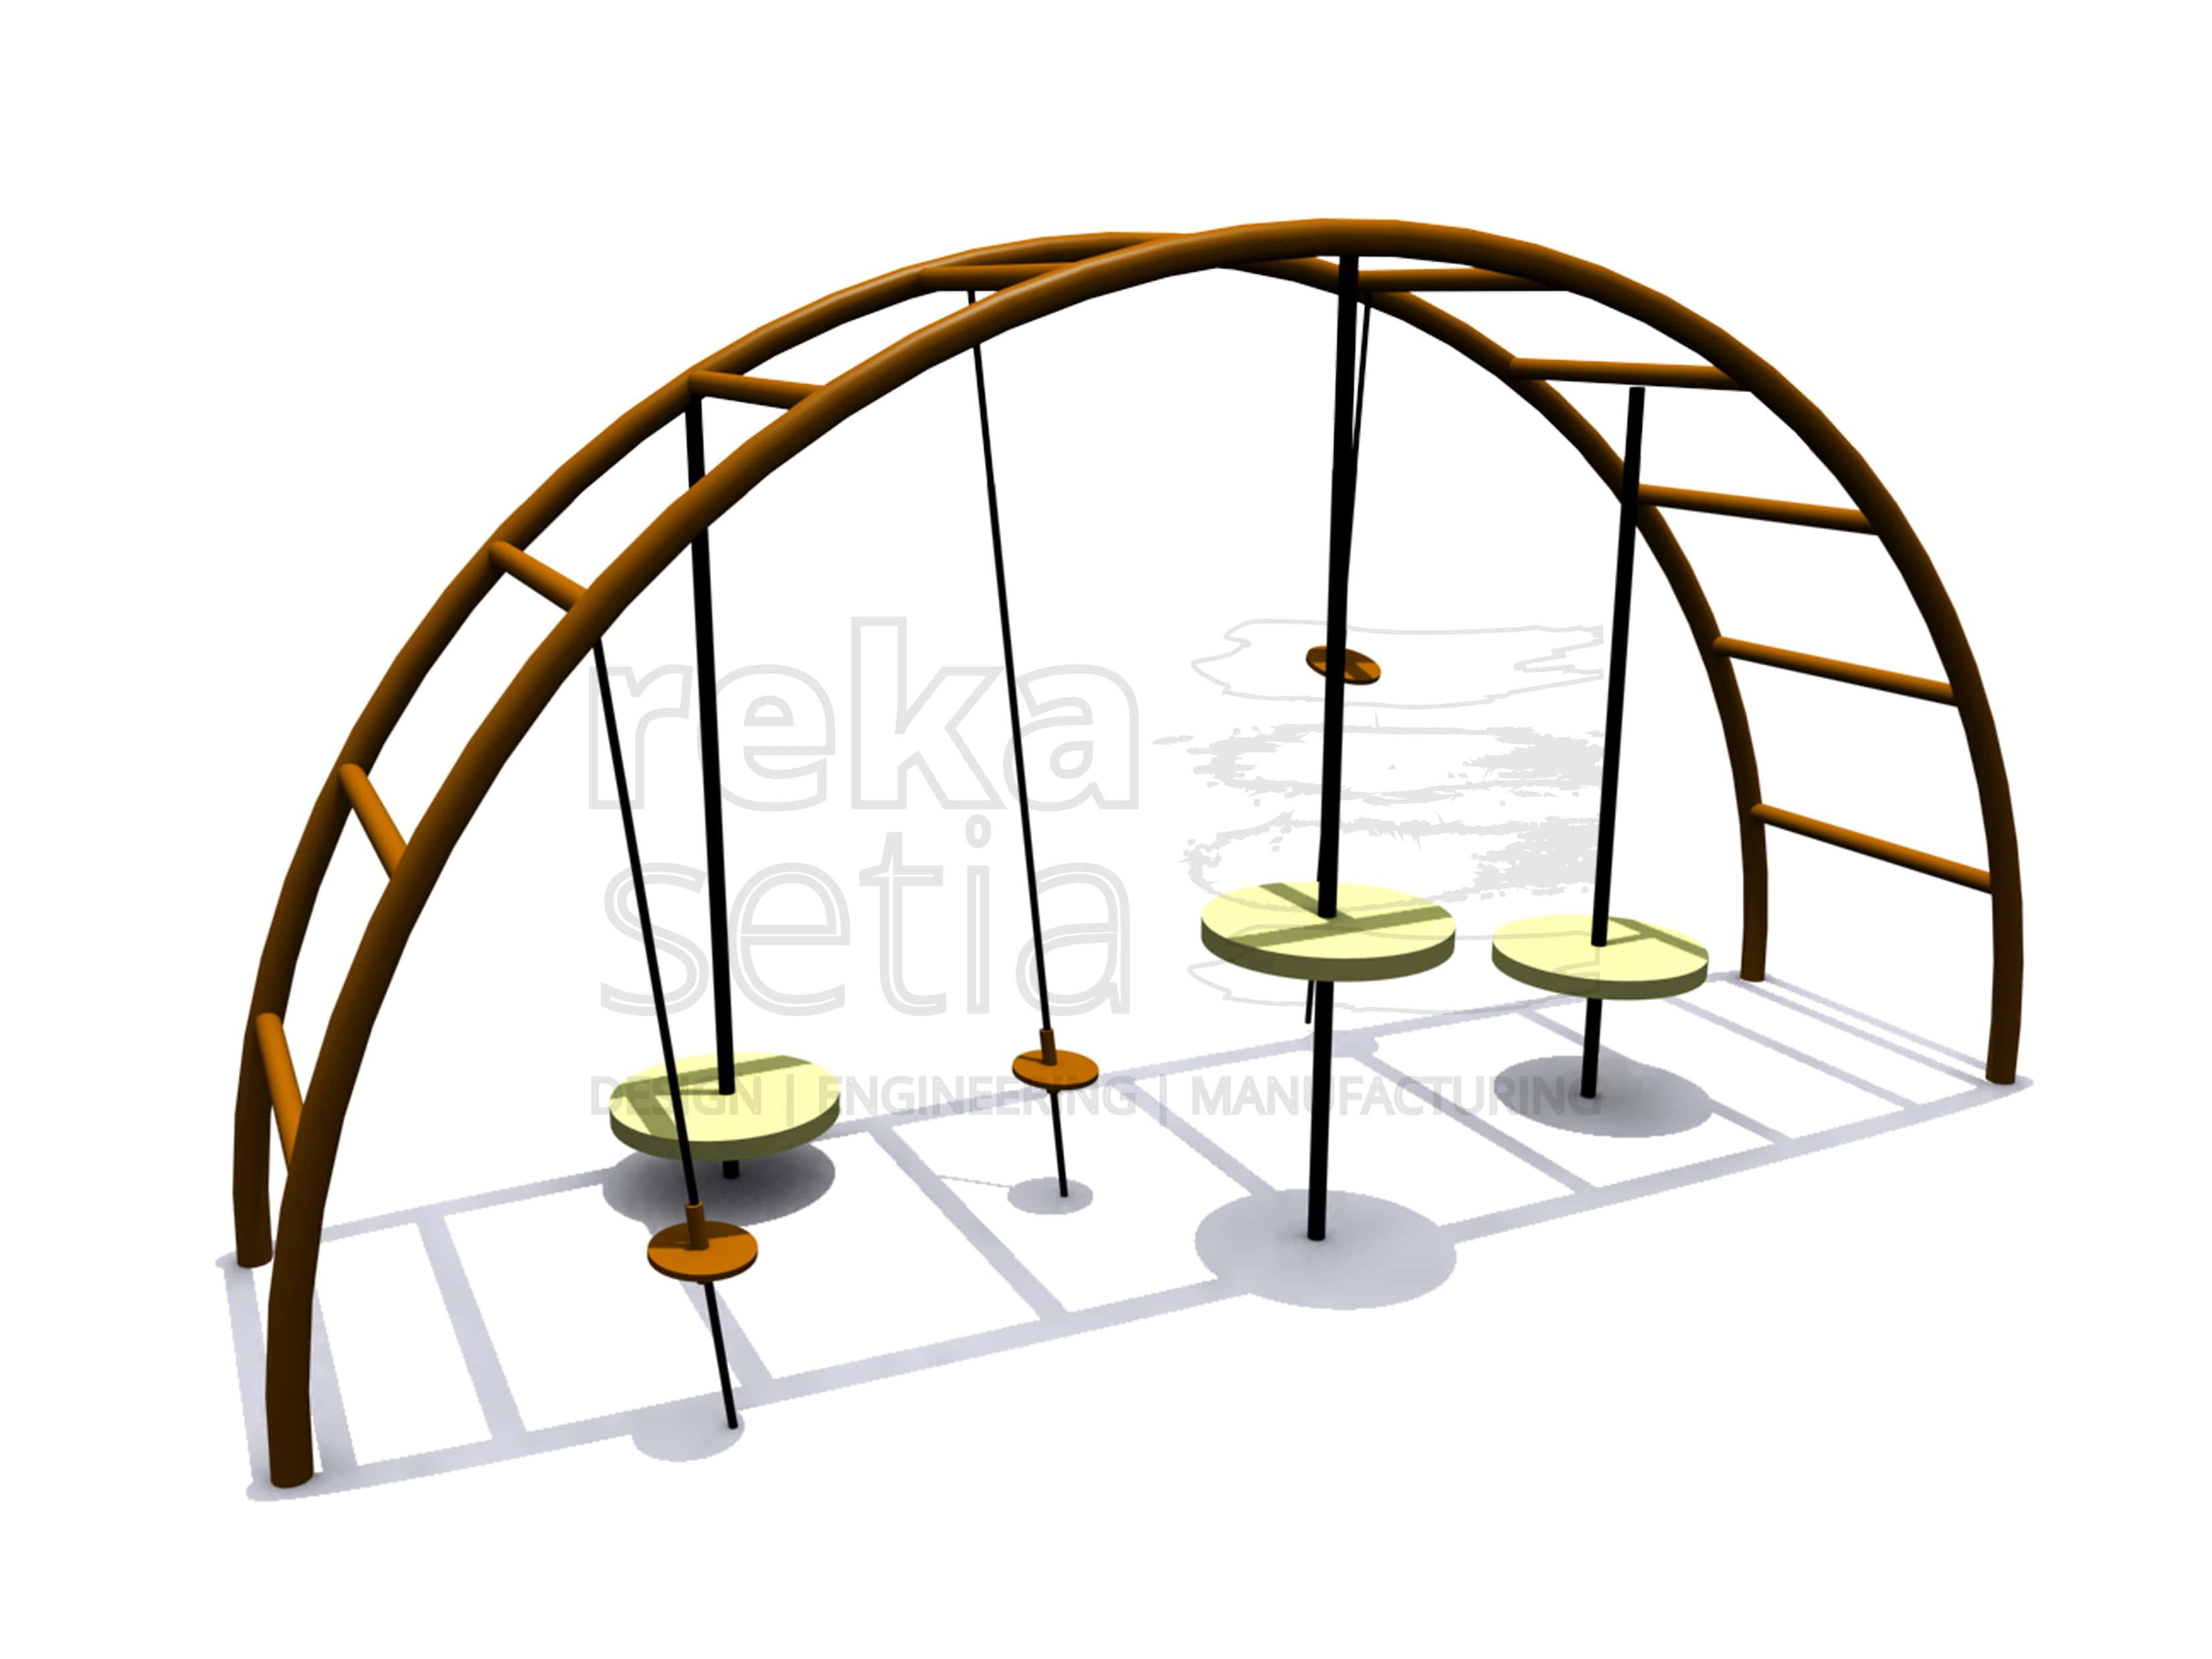 Arch Climbers clipart #1, Download drawings